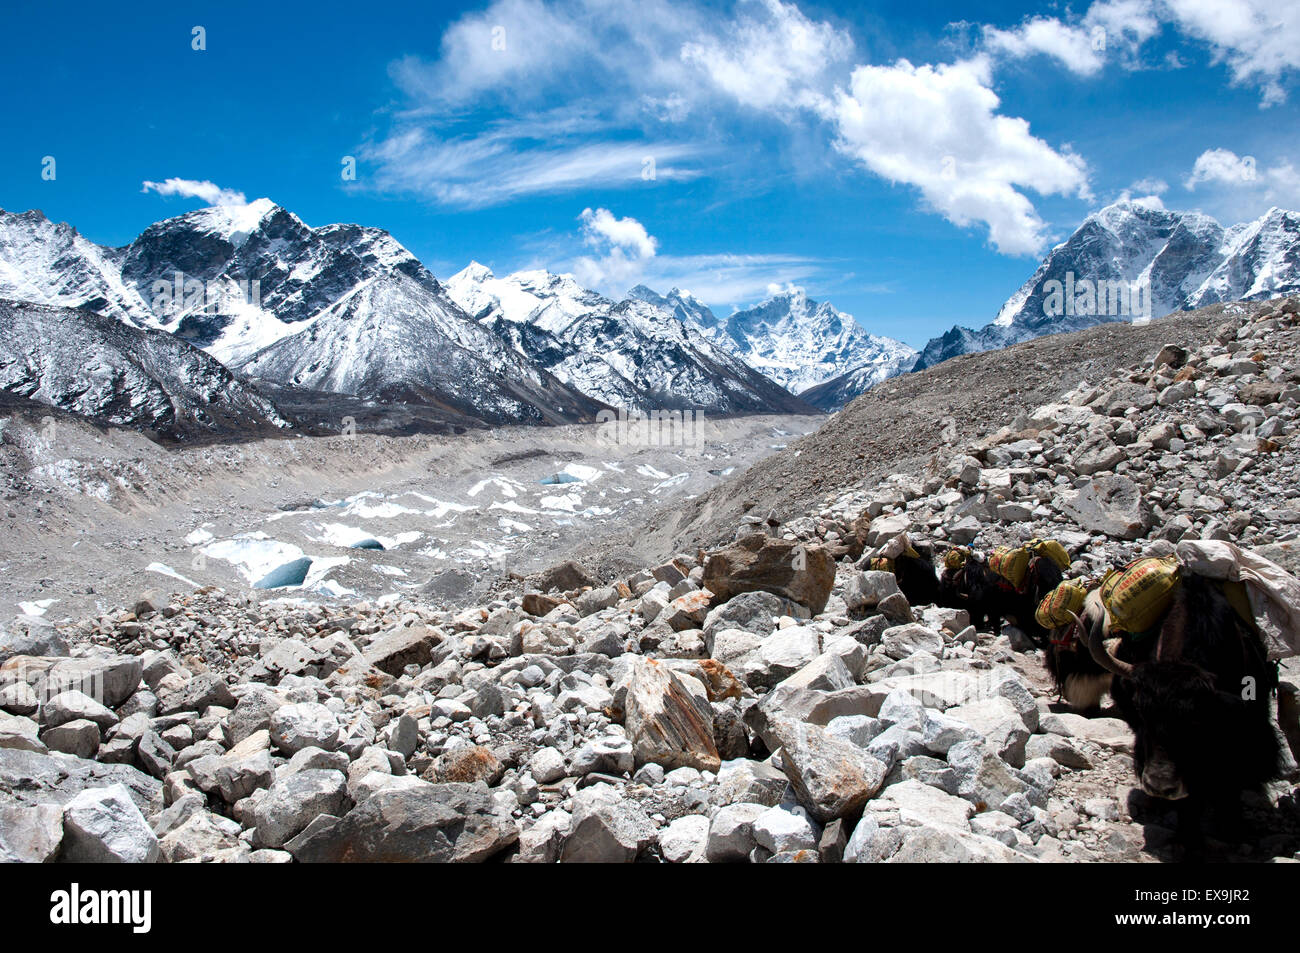 Yaks - Everest Base Camp Trail - Nepal - Stock Image